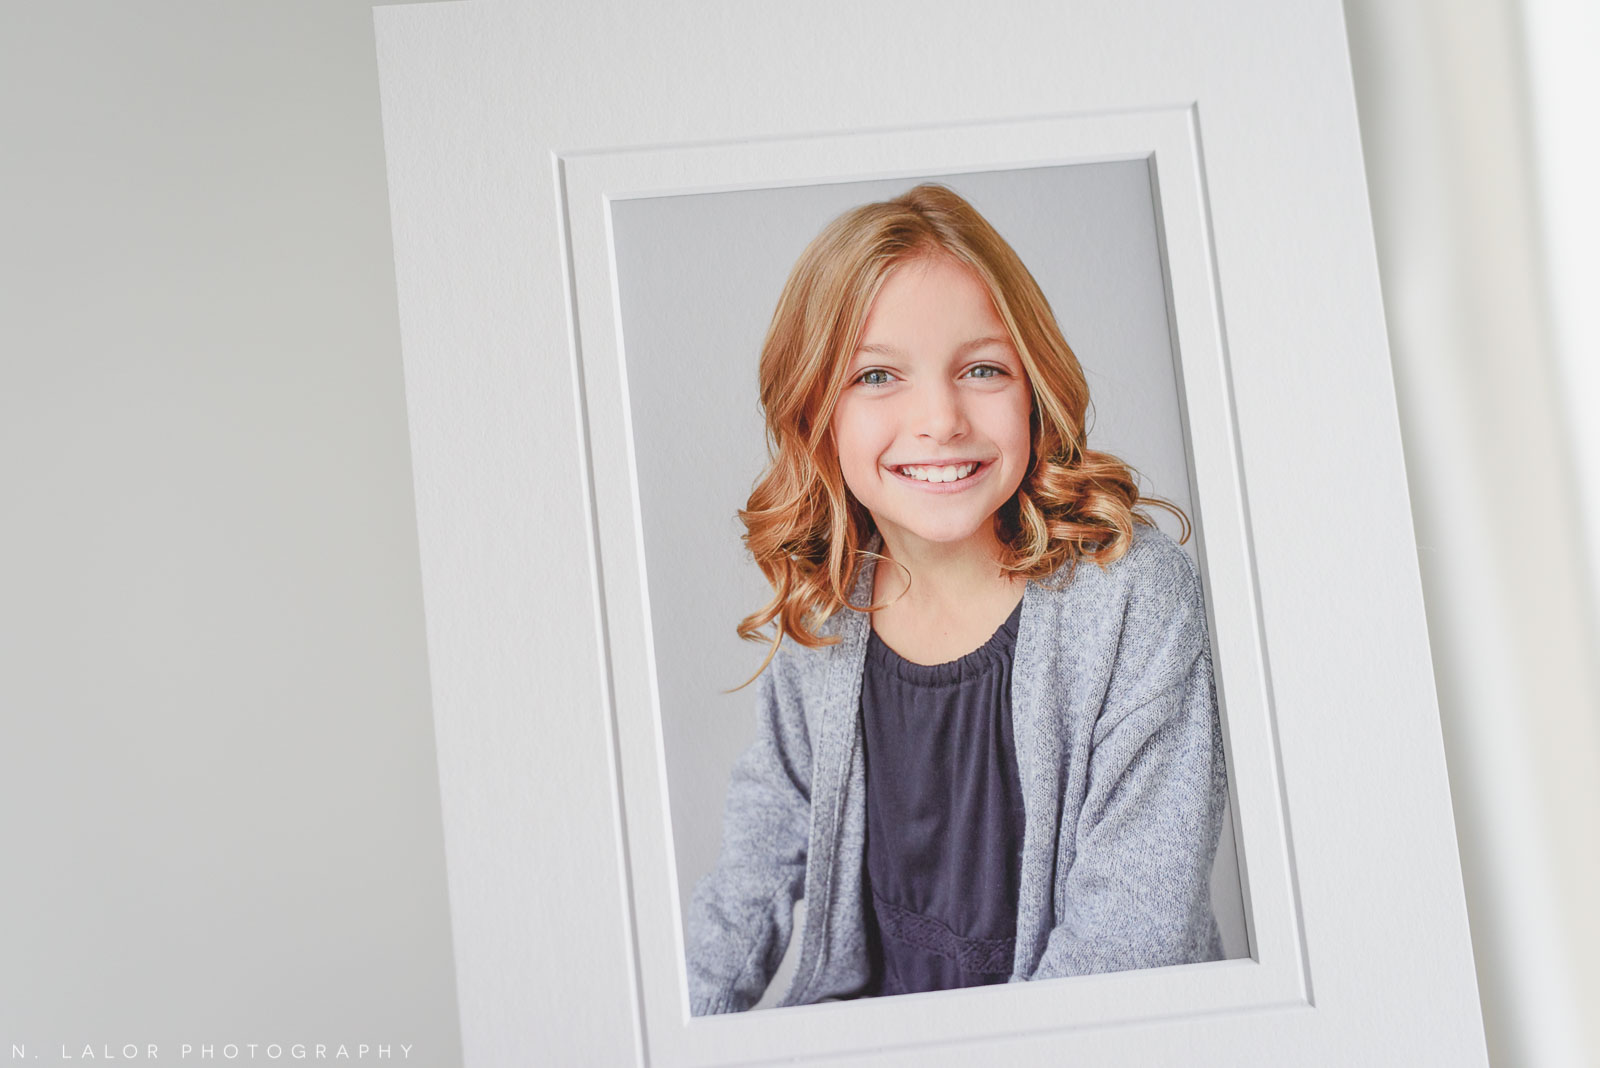 Fine art matted print. Portrait by N. Lalor Photography in Greenwich, Connecticut.